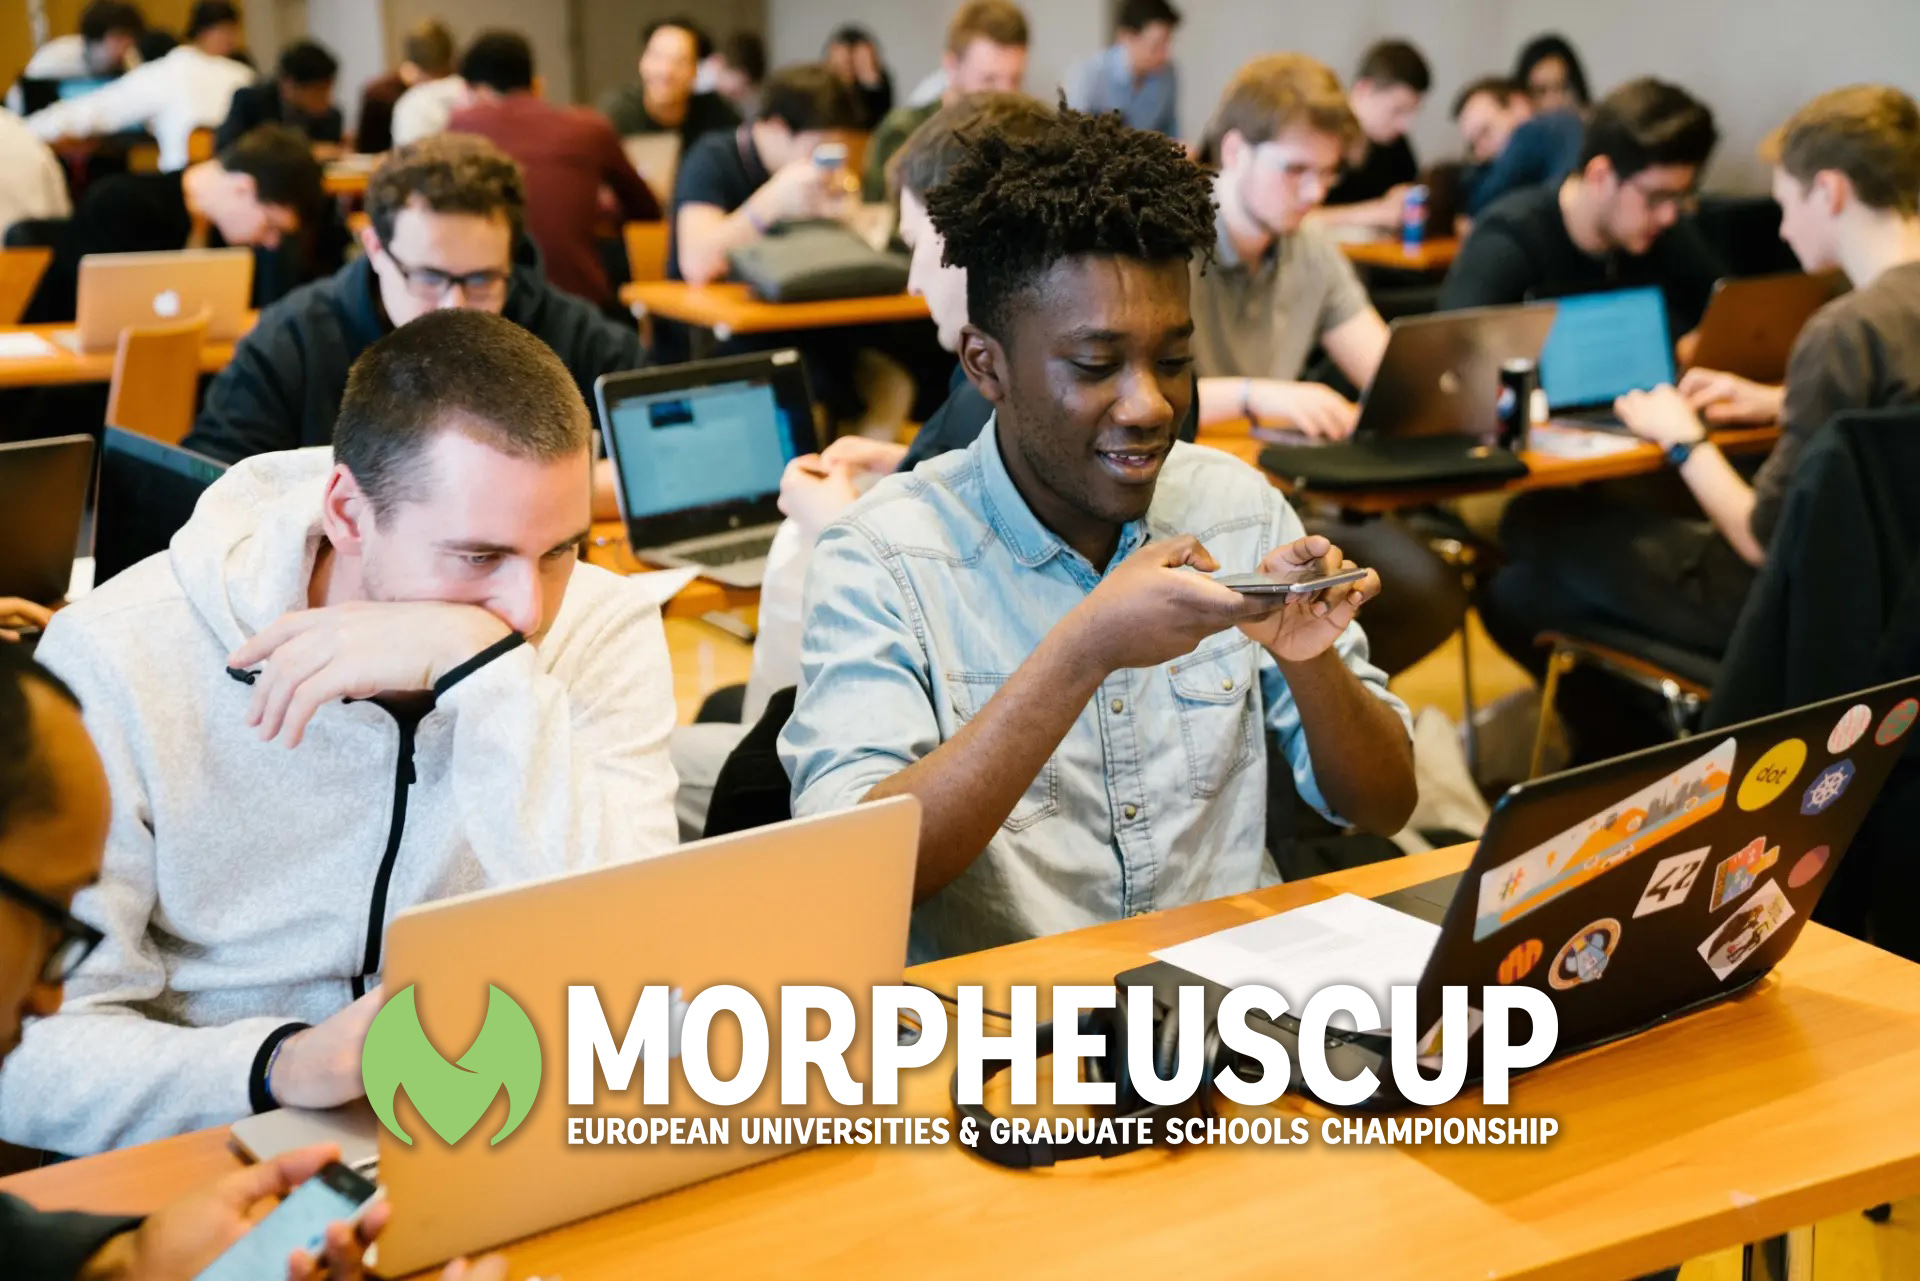 Morpheus Cup: Showcase your entrepreneurial talent